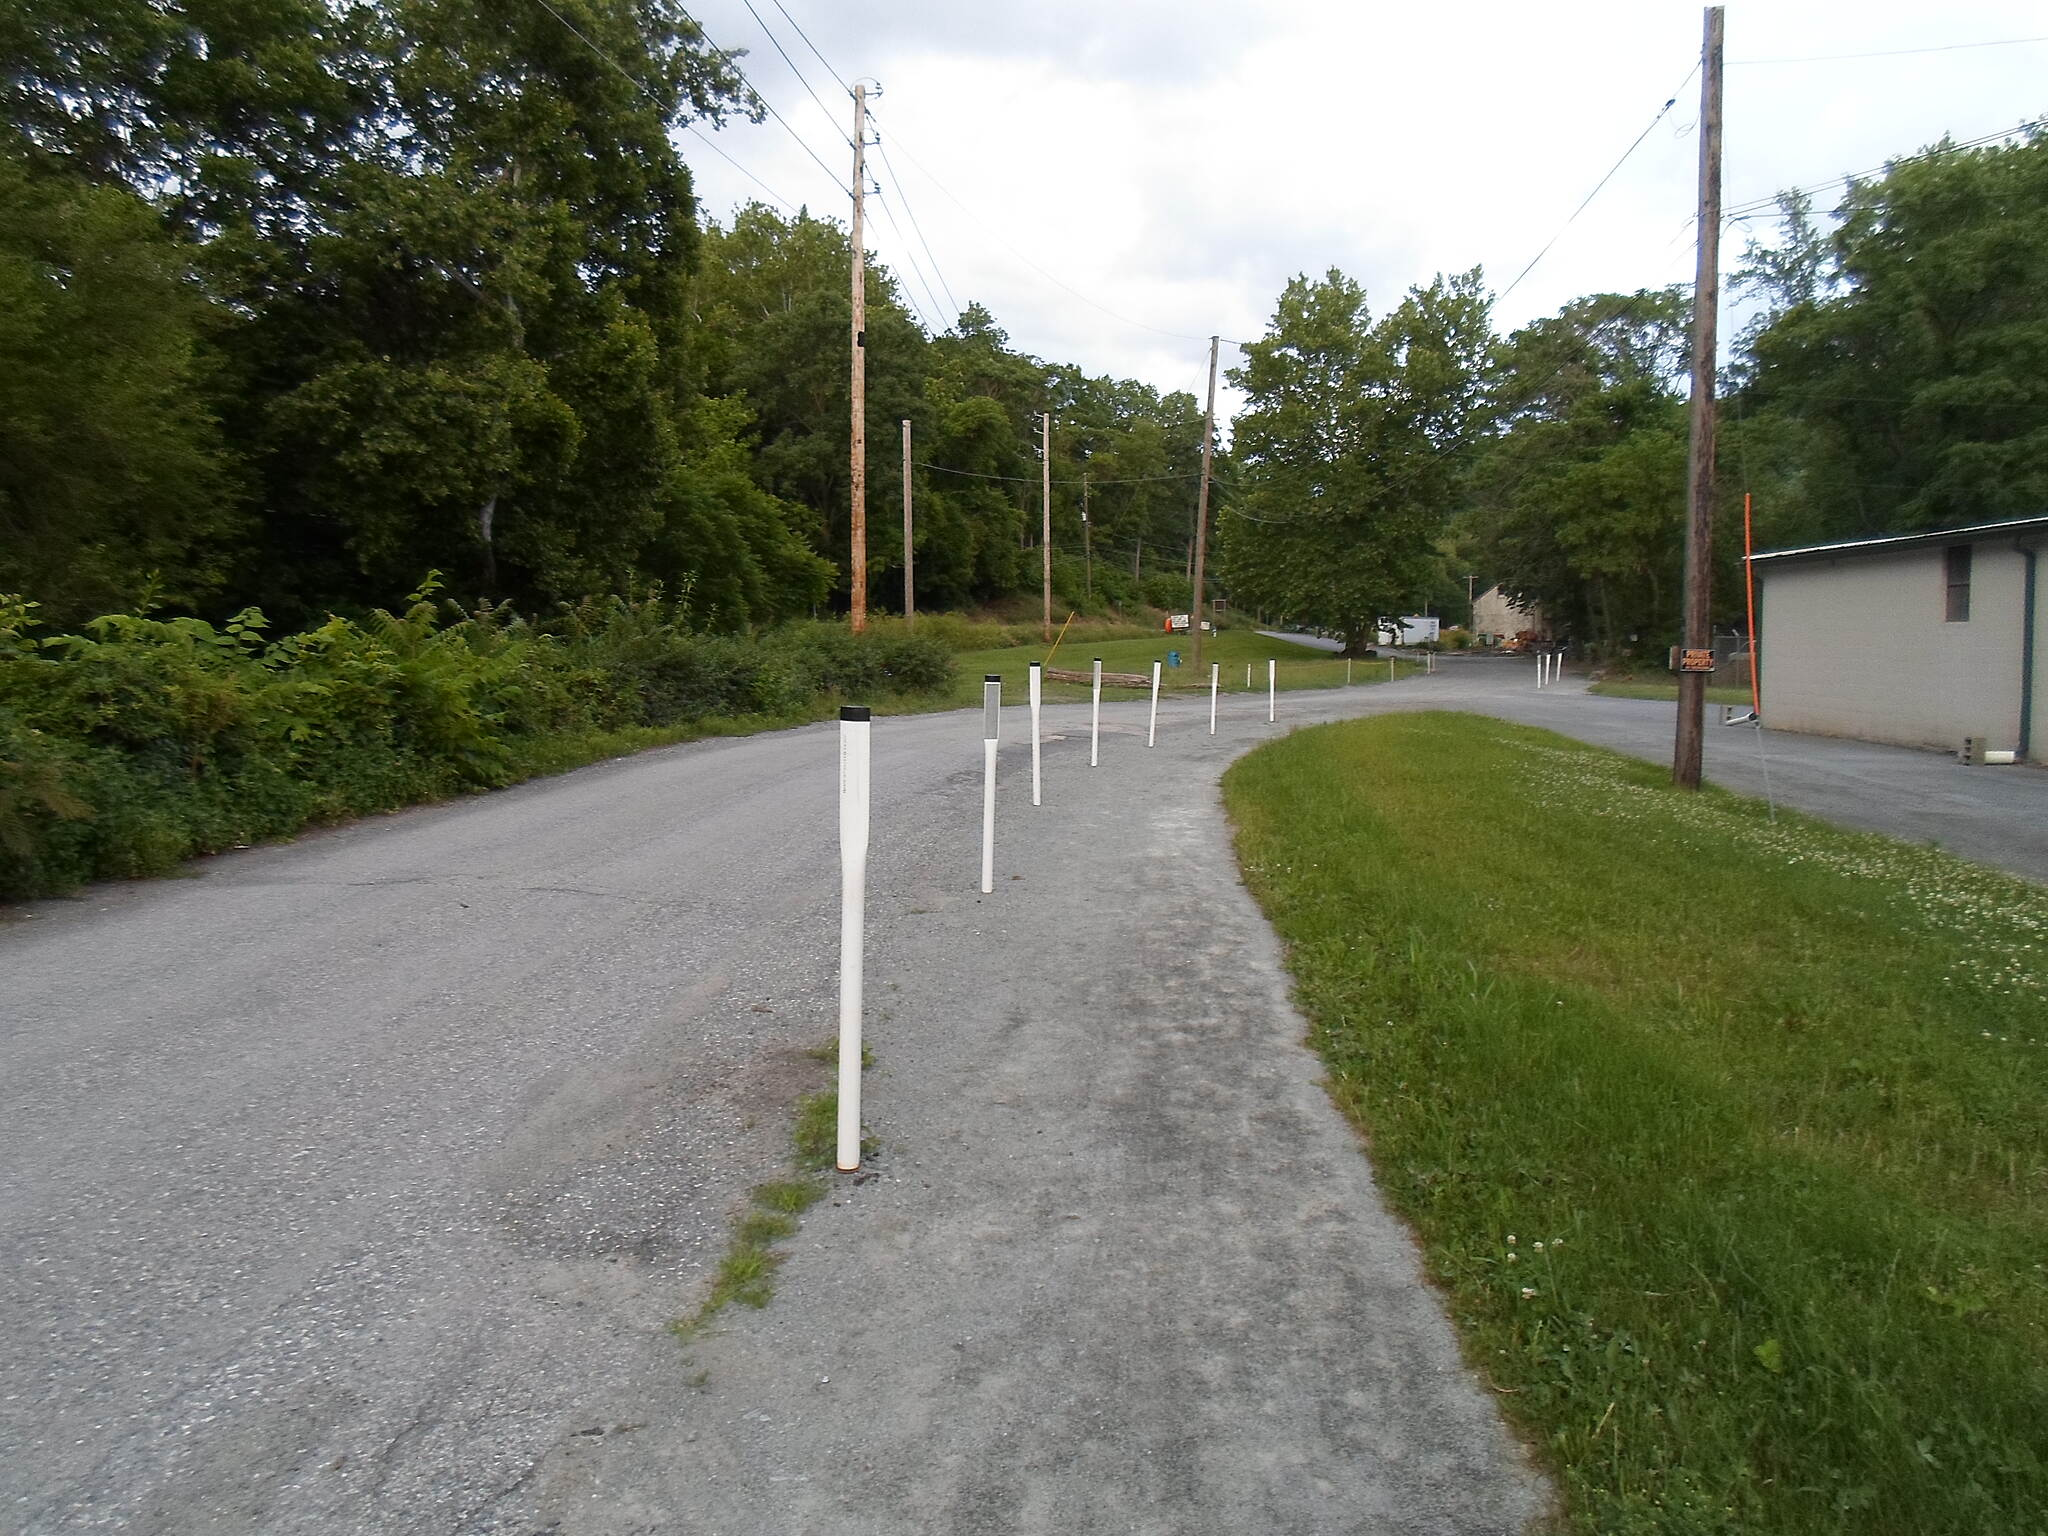 Northwest Lancaster County River Trail Northwest River Trail Reflector-topped posts separate the 'trail' segment of Furnace Road from the official road southeast of Marietta. Taken June 2015.